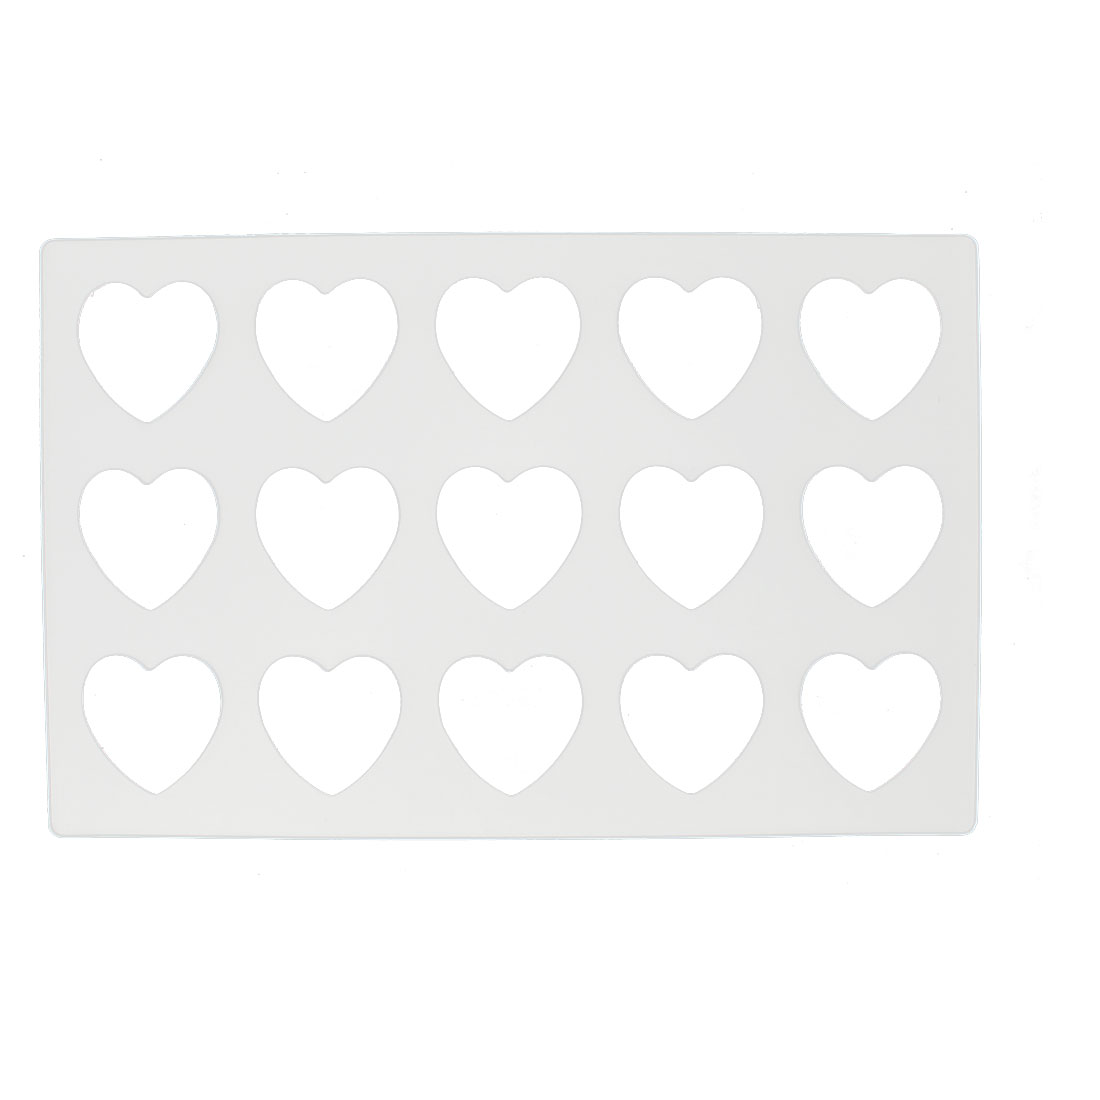 Household Heart Shape Design Part Cake Chocolate Mould